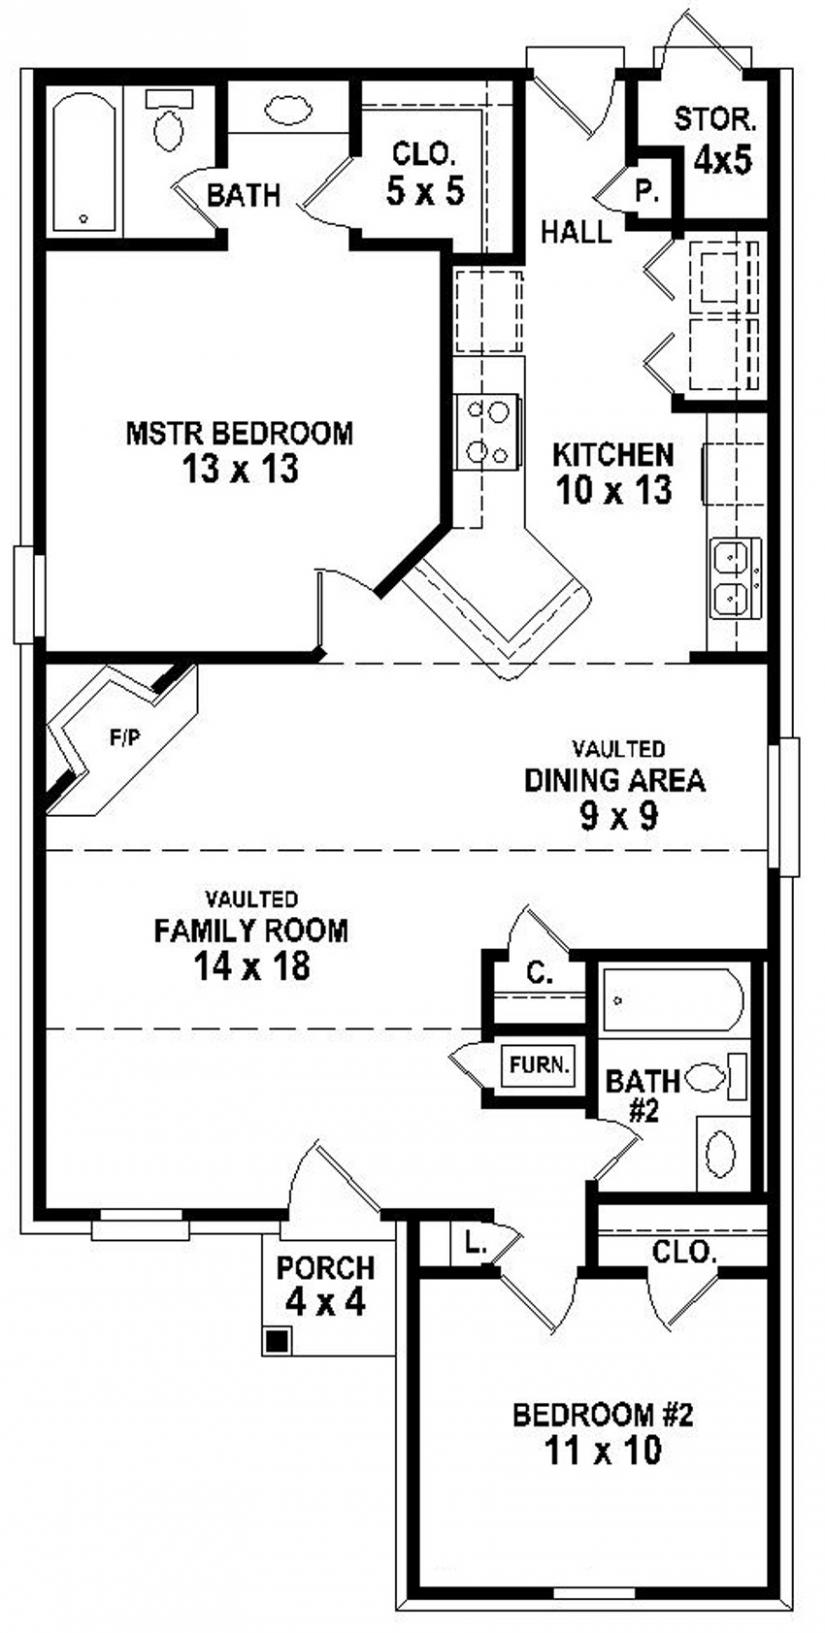 2 bedroom house floor plans simple 2 bedroom house floor for Simple 2 bedroom house